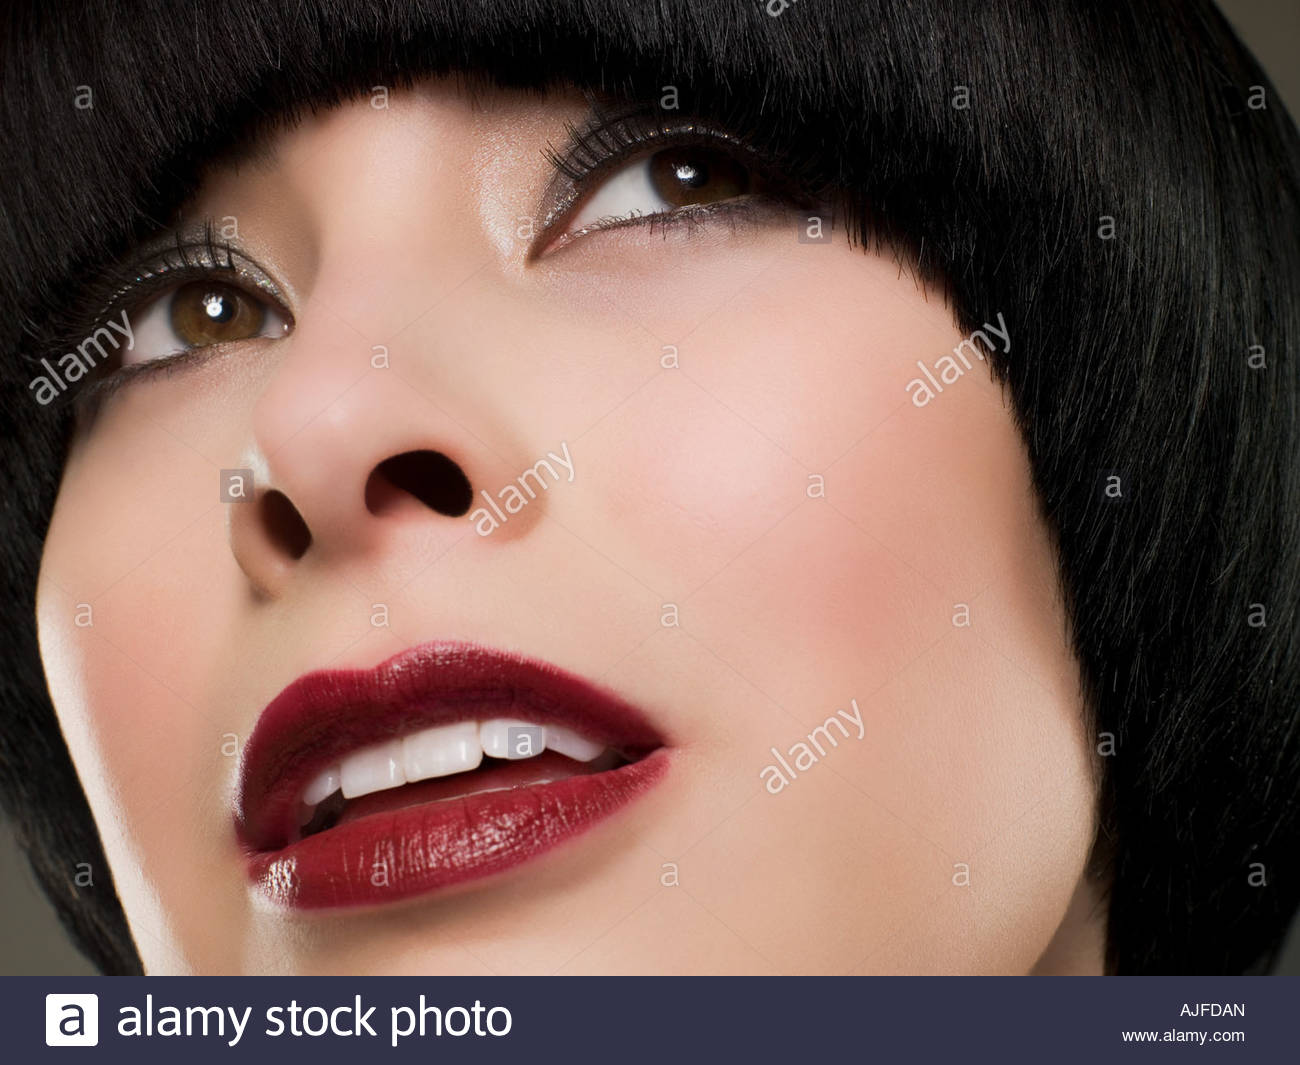 Headshot of a woman with bob hairstyle - Stock Image